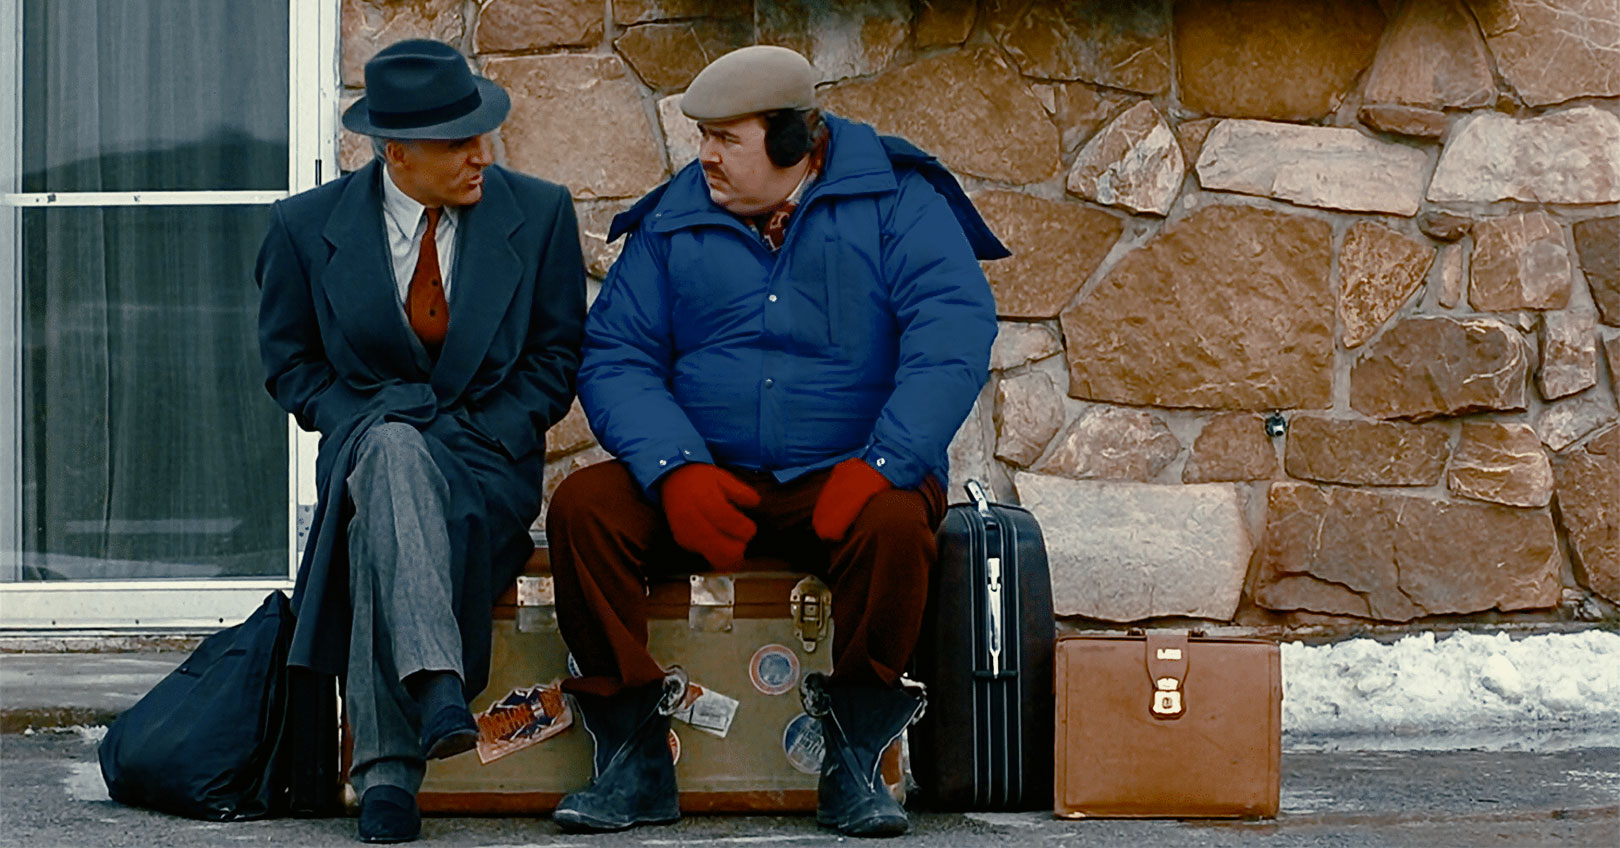 Planes, Trains and Automobiles - Steve Martin and John Candy